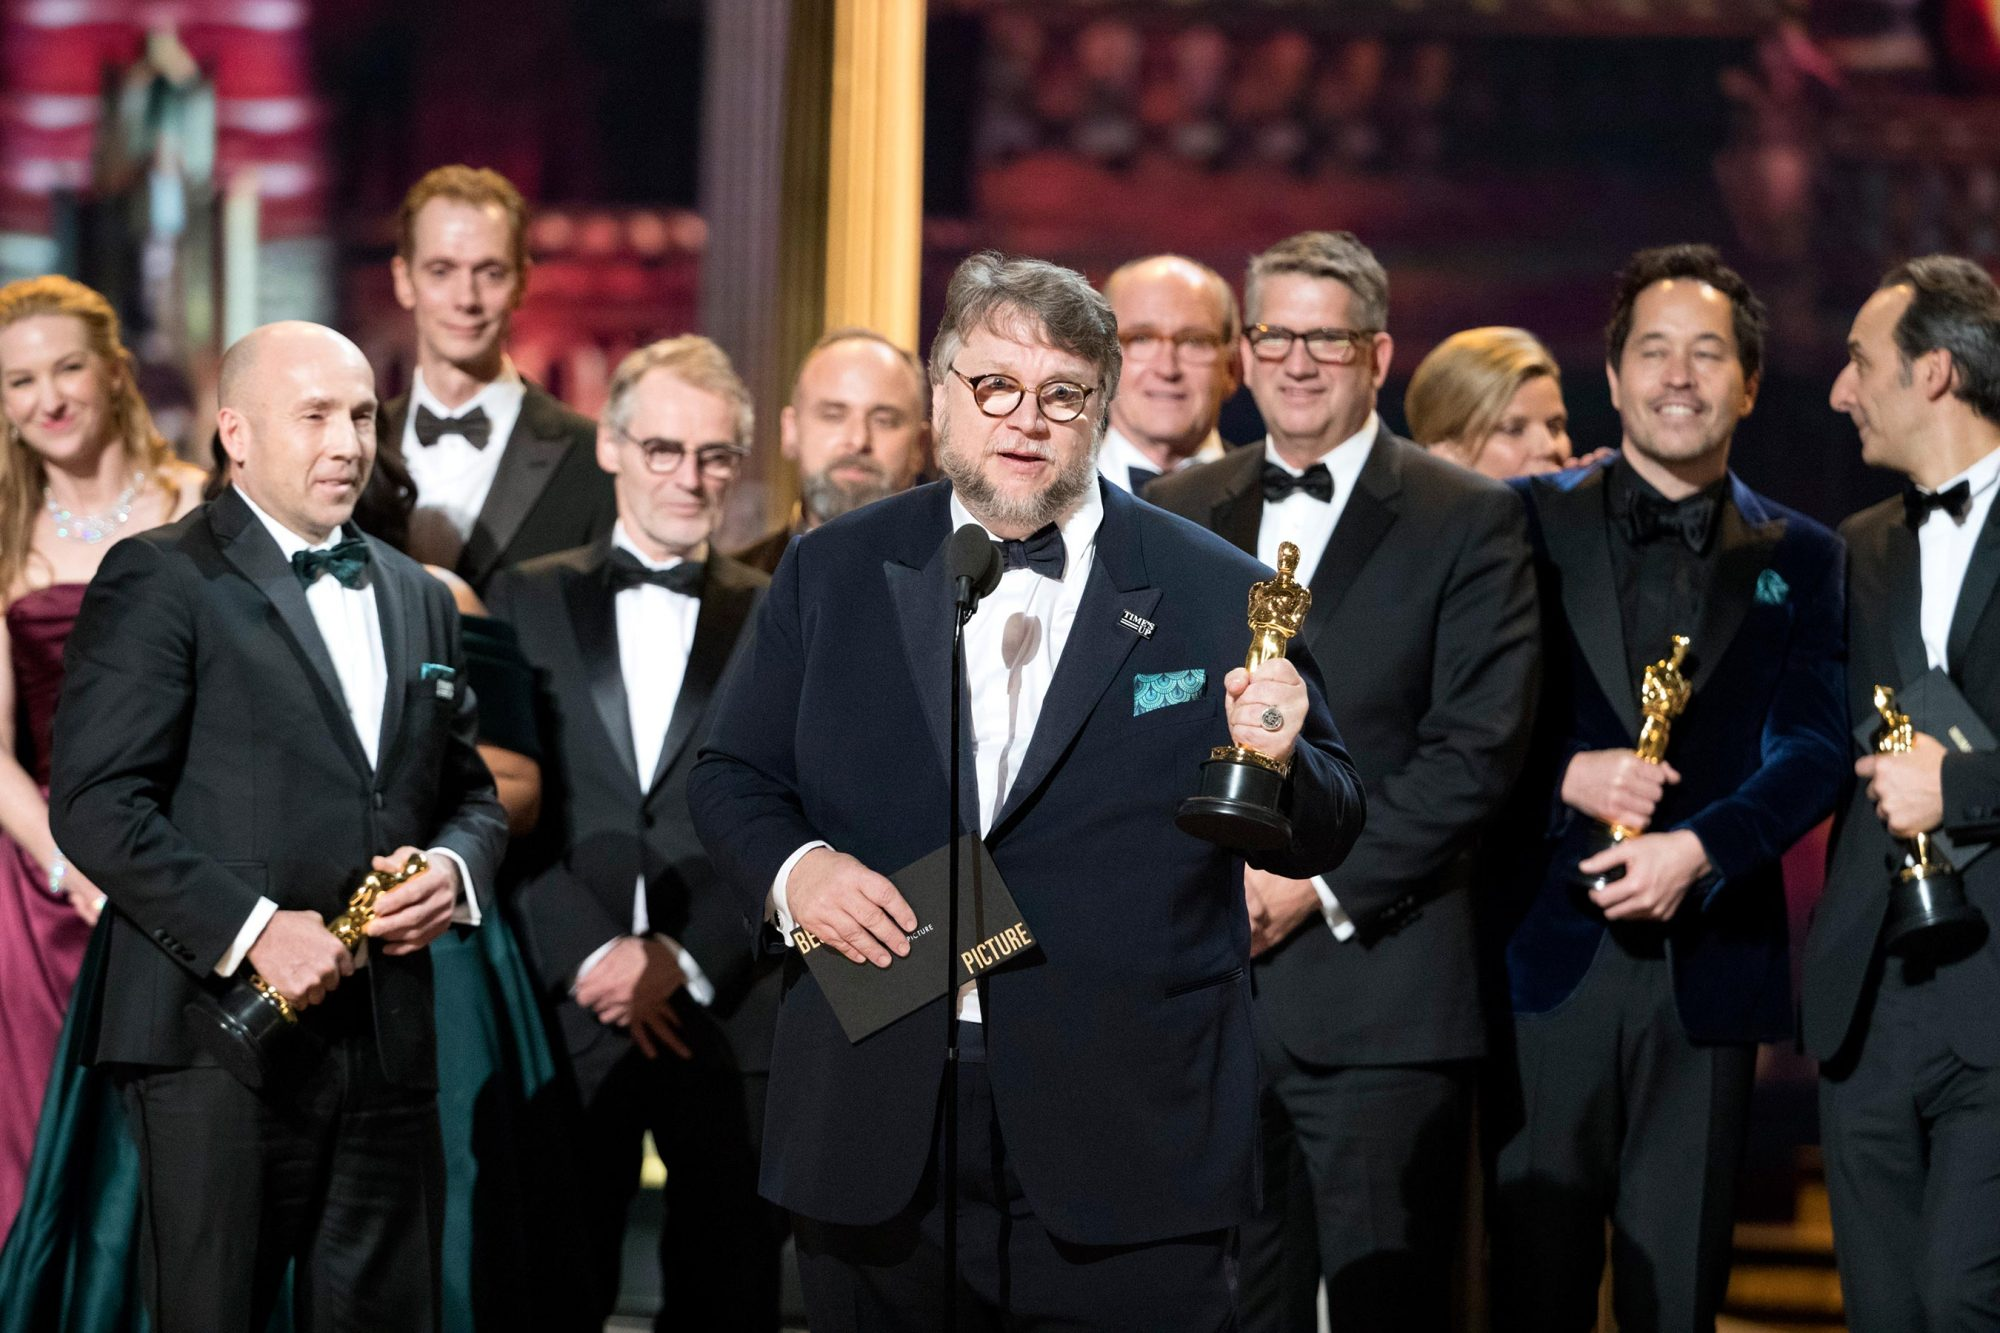 GUILLERMO DEL TORO, CAST AND CREW OF THE SHAPE OF WATER